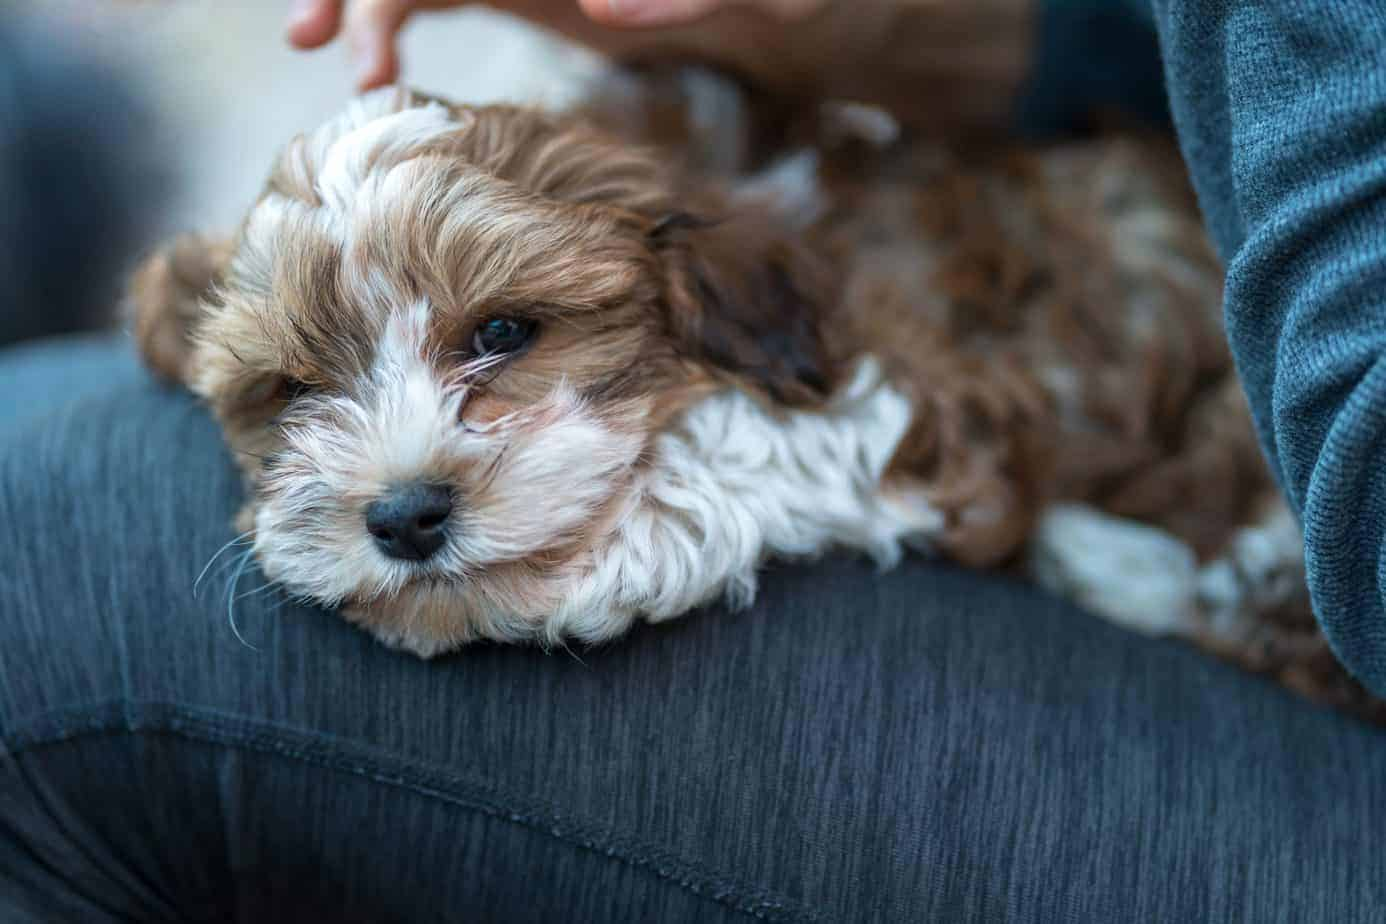 Havanese puppy snuggles on her owner's lap. All dogs want to be lap dog breeds. Most dogs like to cuddle and use climbing into their owners' laps as a chance to communicate.